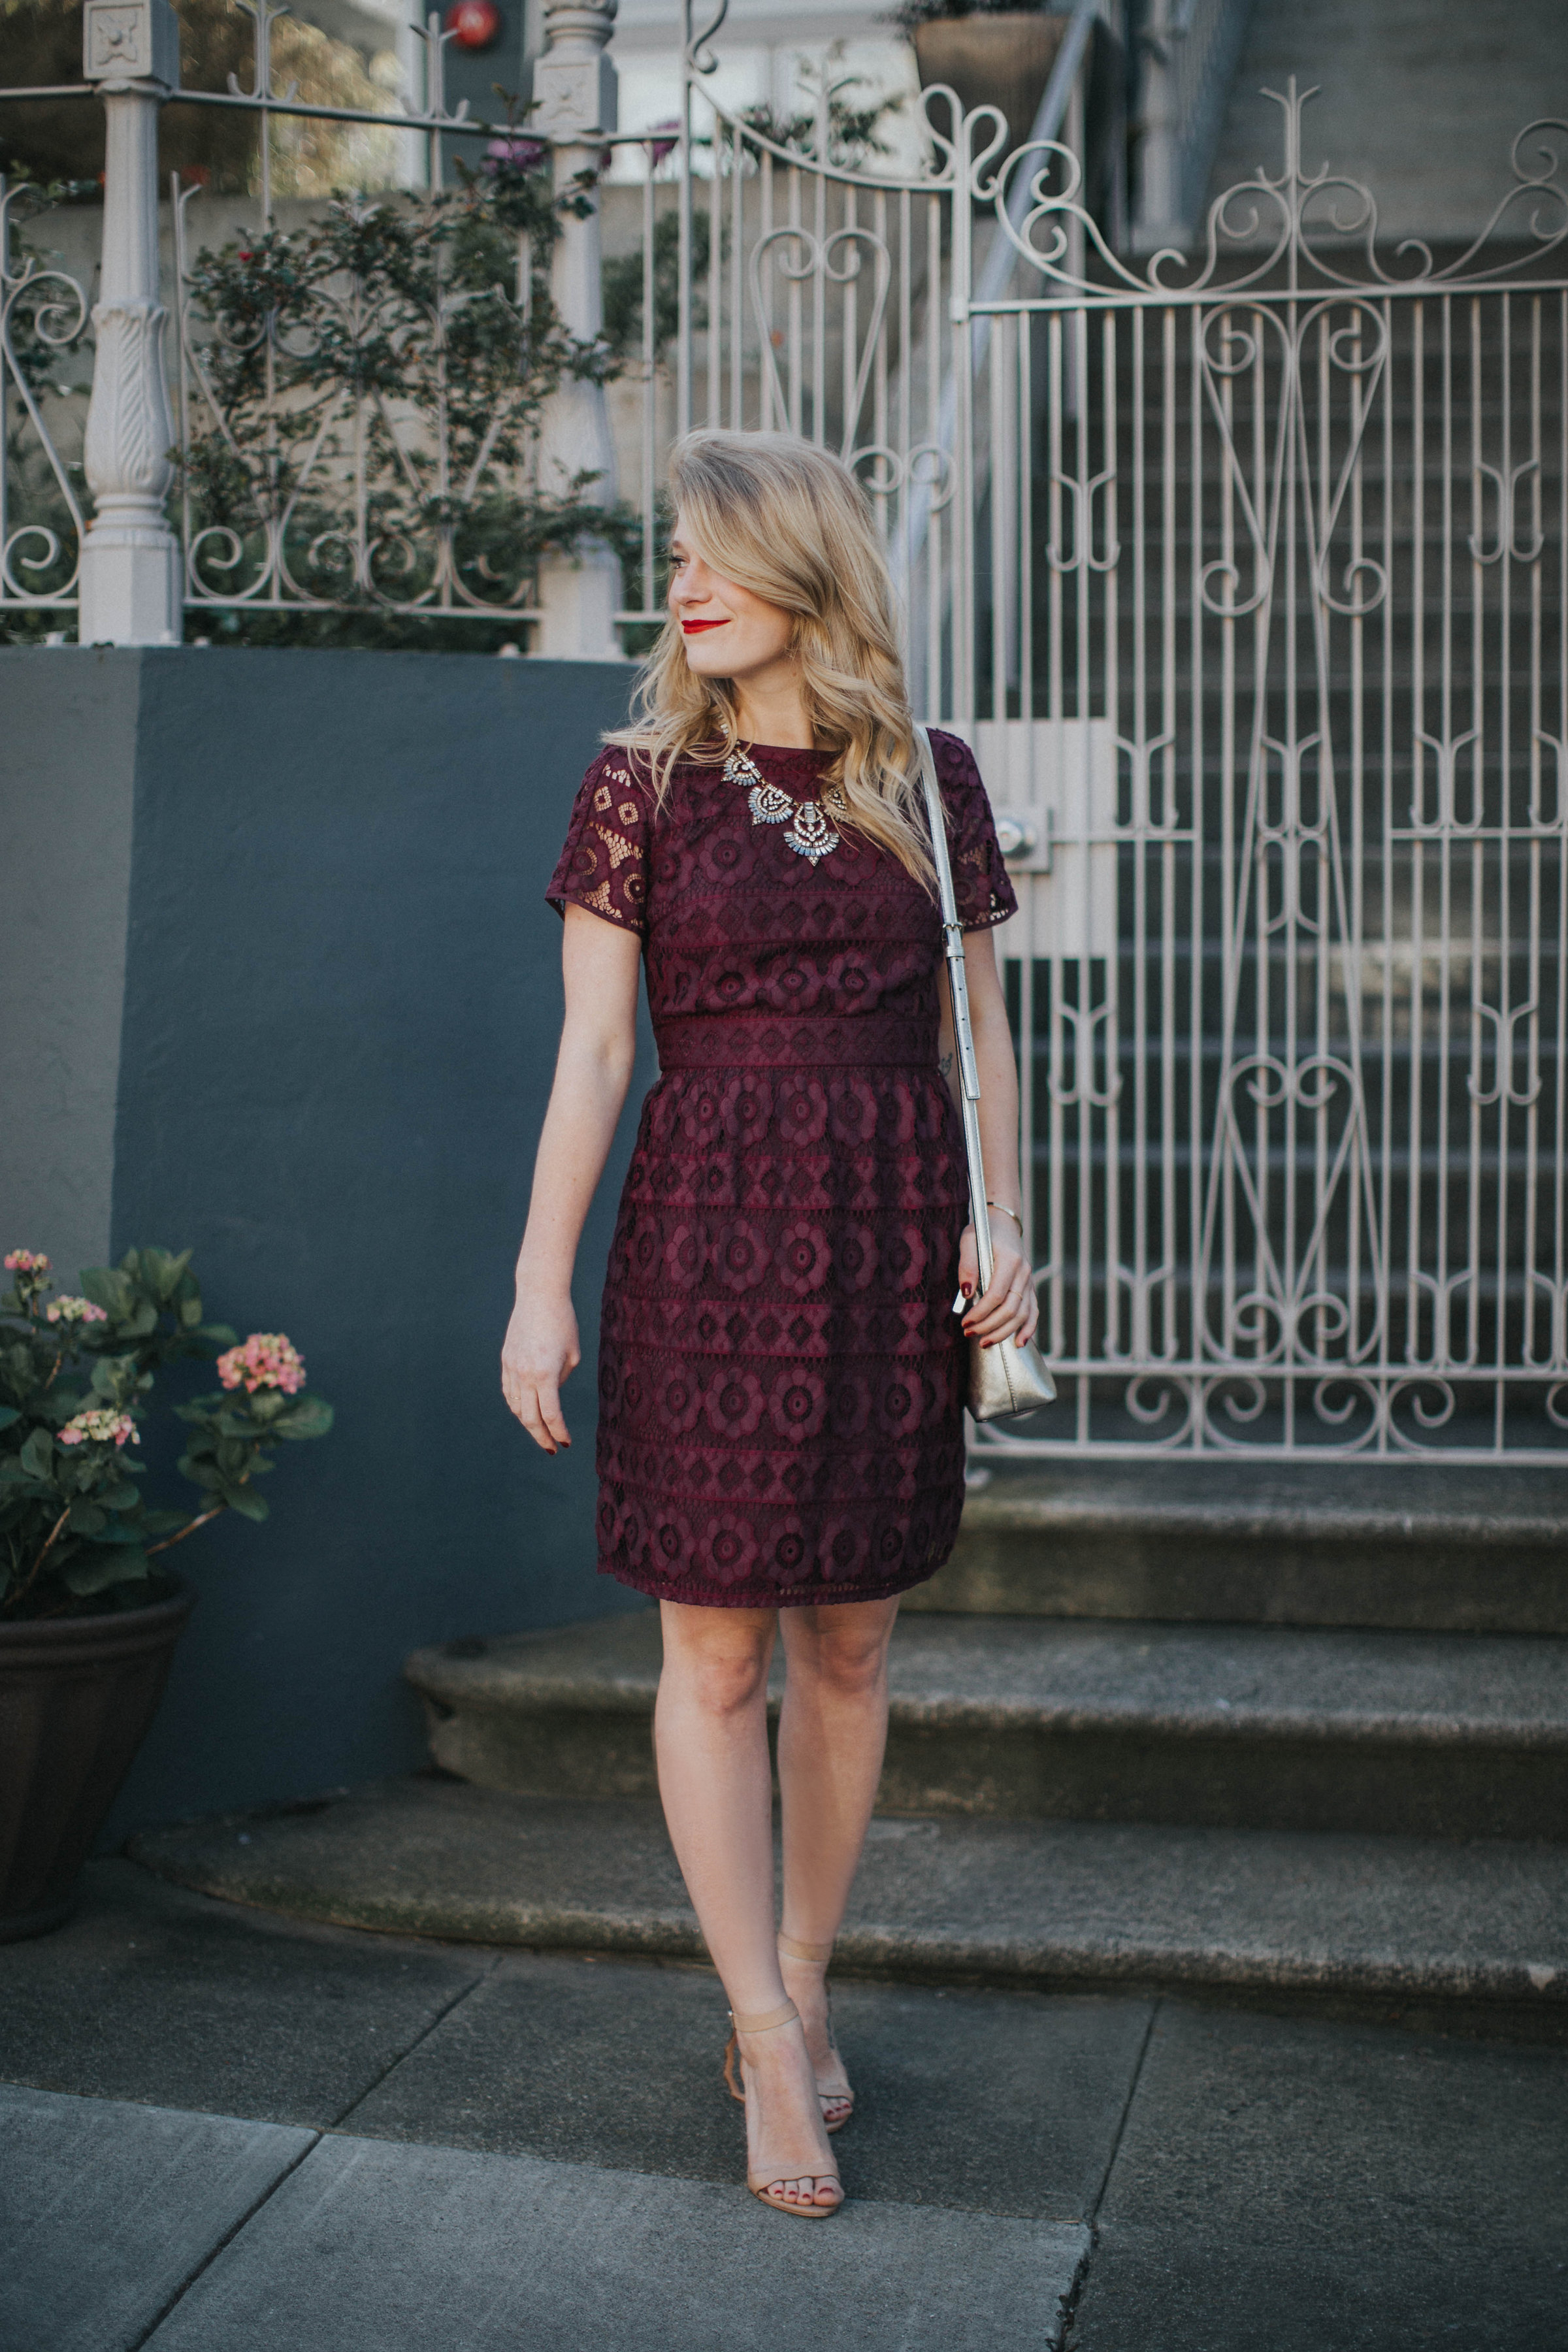 This purple LOFT lace dress is the best for spring weddings paired with a BaubleBar statement necklace and Loeffler Randall sandals.